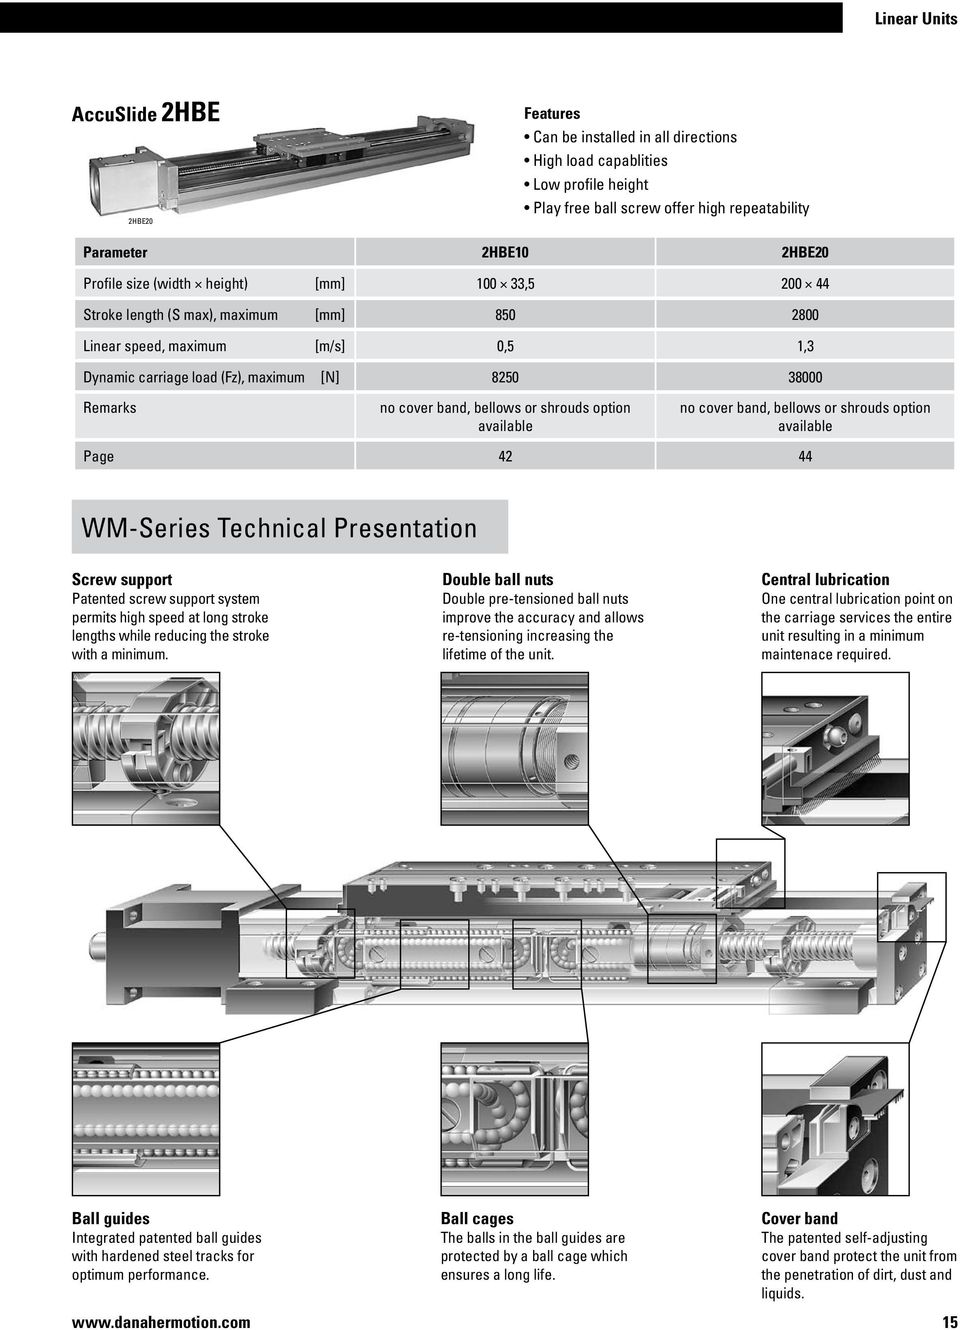 option available no cover band, bellows or shrouds option available Page 42 44 WM-Series Technical Presentation Screw support Patented screw support system permits high speed at long stroke lengths